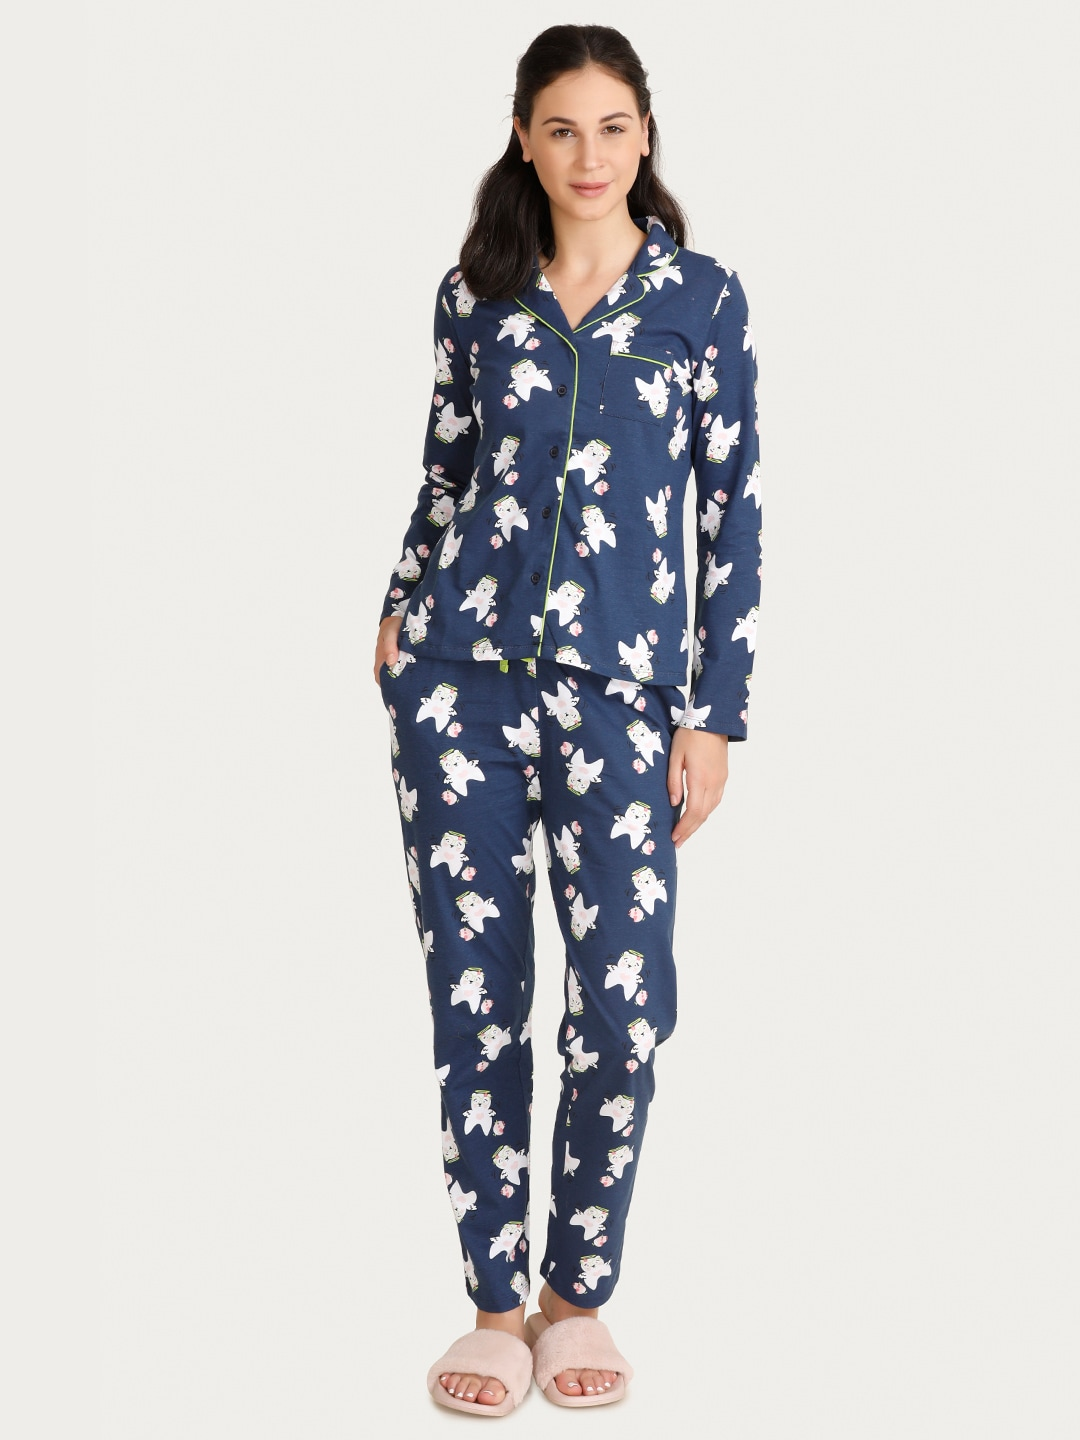 Women Loungewear   Nightwear - Buy Women Nightwear   Loungewear online -  Myntra f16a19933